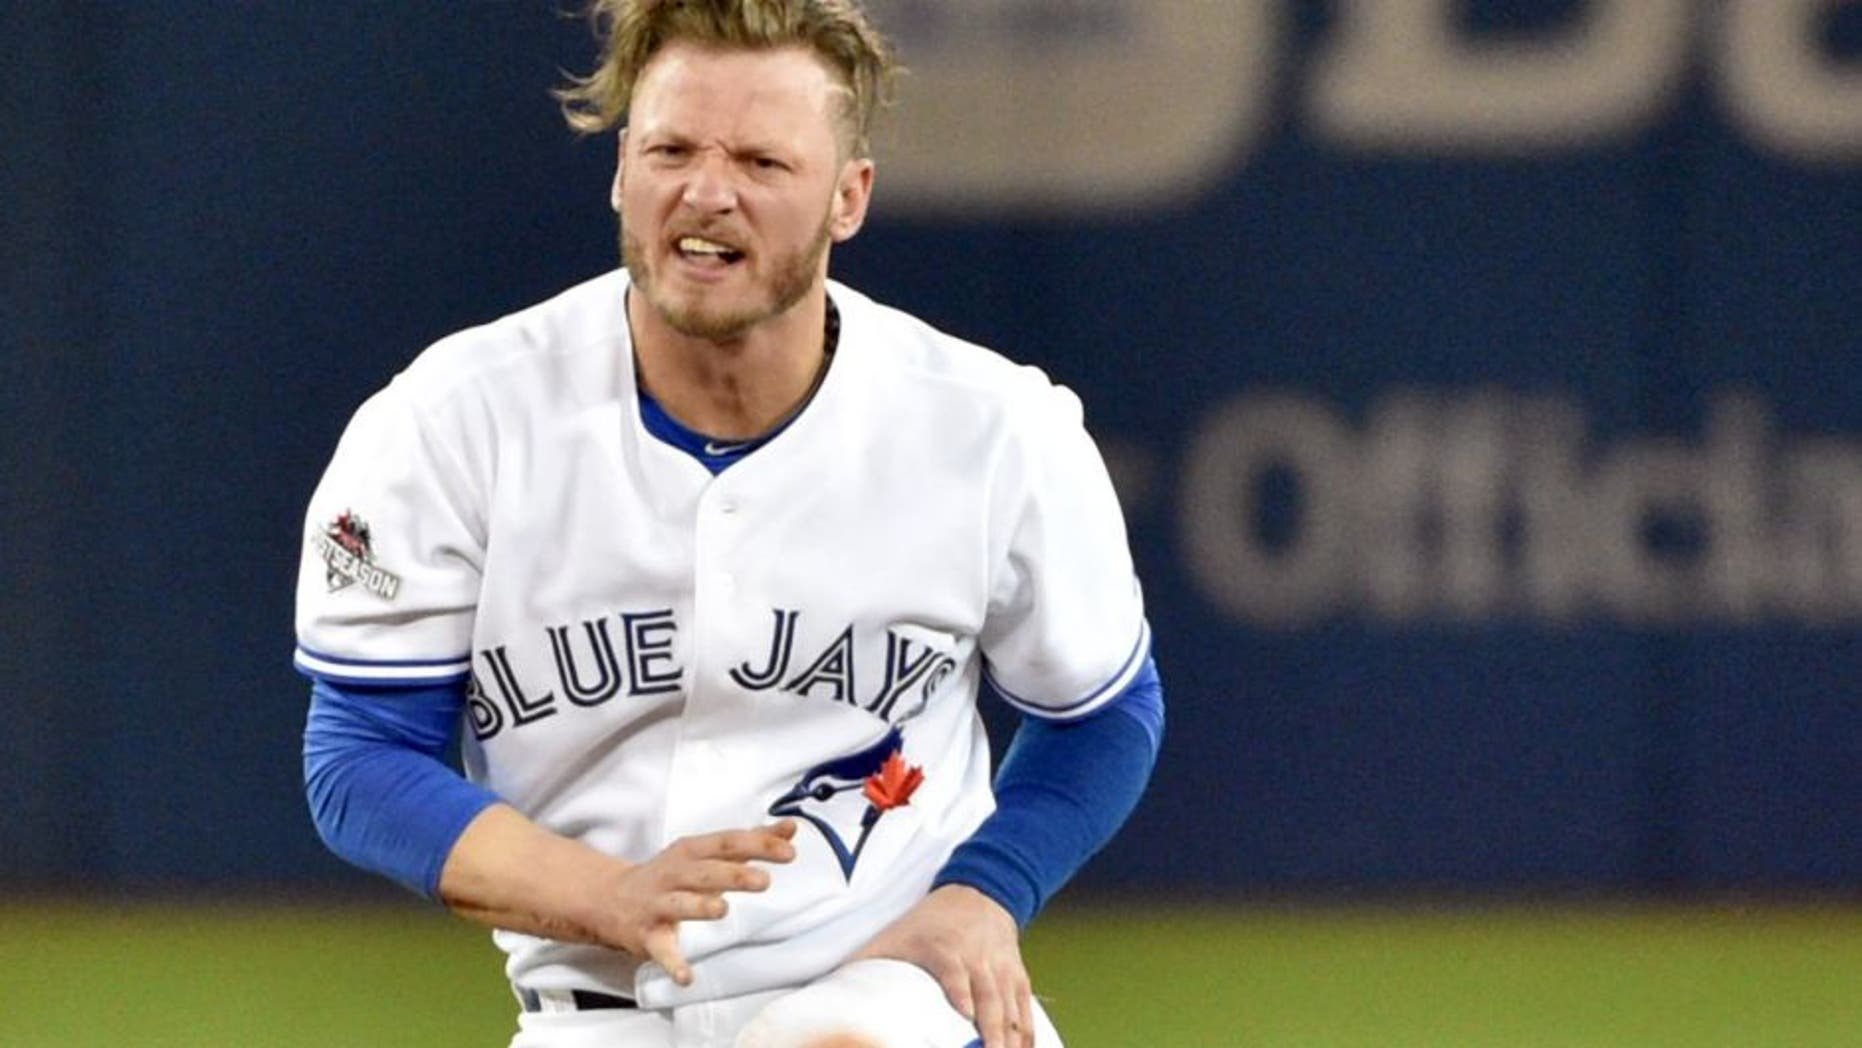 Oct 8, 2015; Toronto, Ontario, CAN; Toronto Blue Jays third baseman Josh Donaldson reacts after being forced out at second base by the Texas Rangers in the fourth inning in game one of the ALDS at Rogers Centre. Mandatory Credit: Nick Turchiaro-USA TODAY Sports